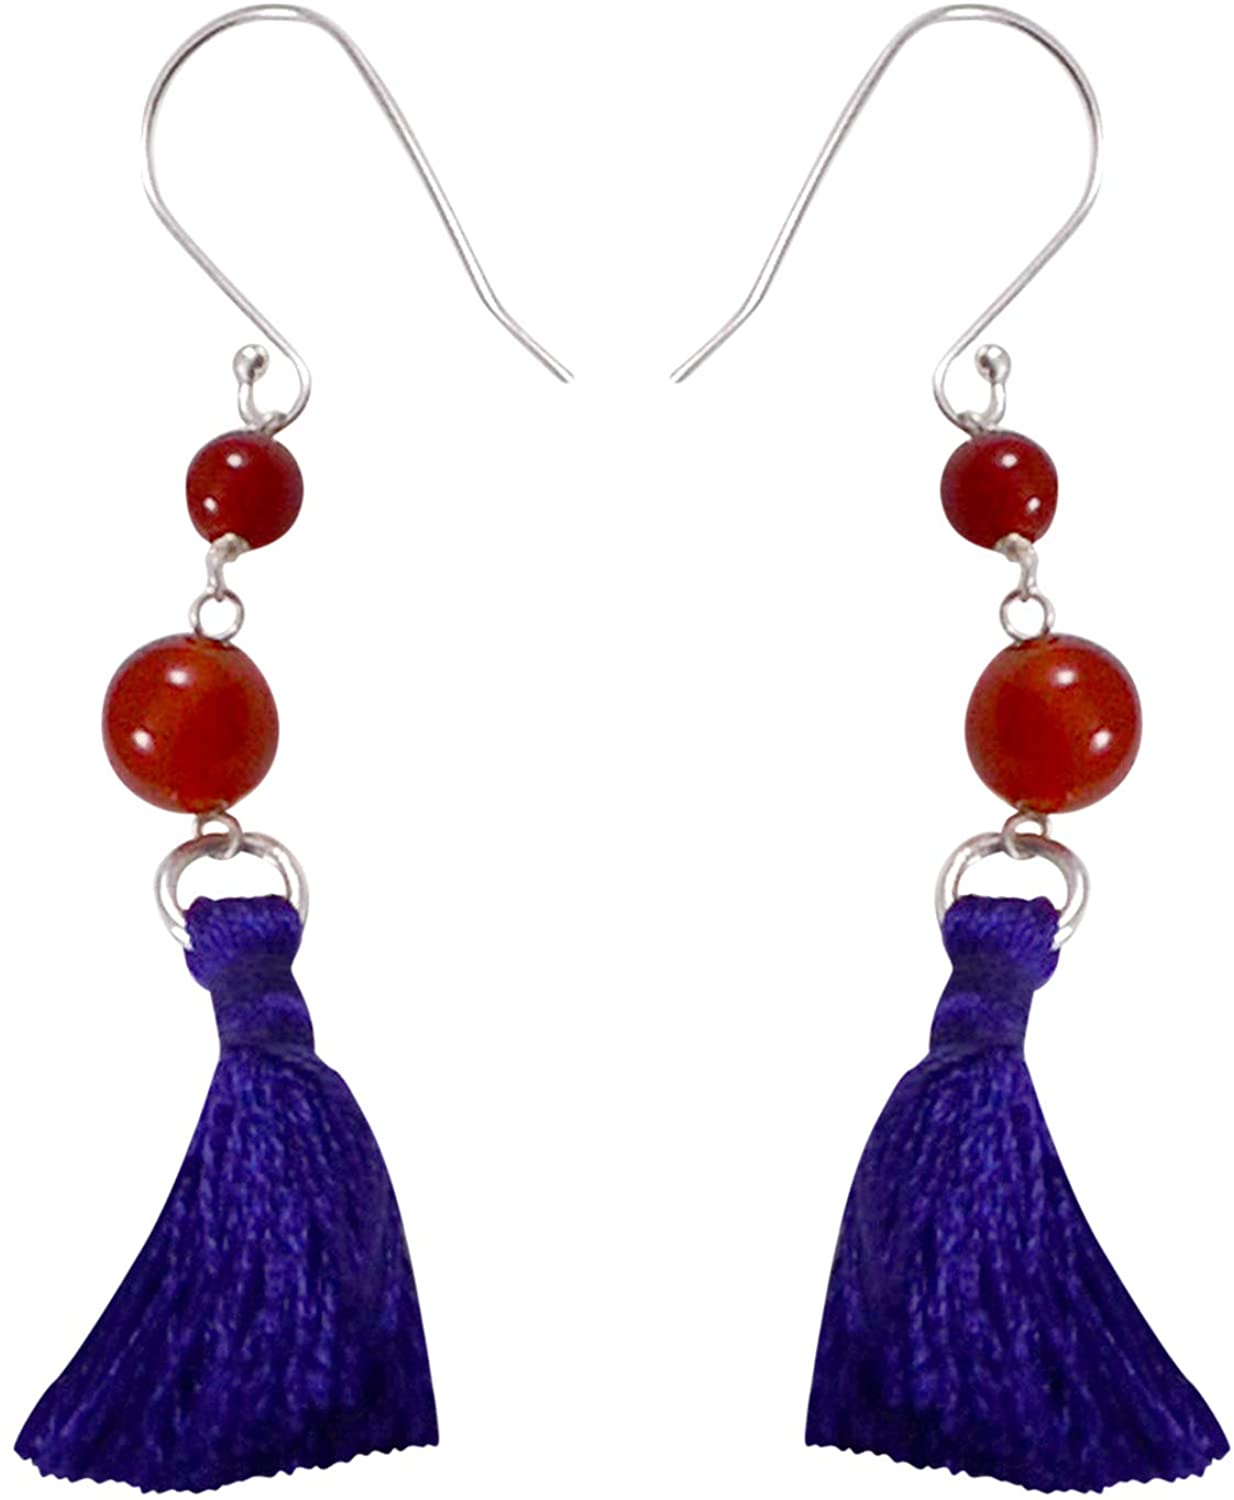 Saamarth Impex 4 & 6 mm Carnelian Handmade Jewelry Manufacturer Round Stone With Tassel 925 Sterling Silver,Fish Hook, Jaipur Rajasthan India Dangle Earring